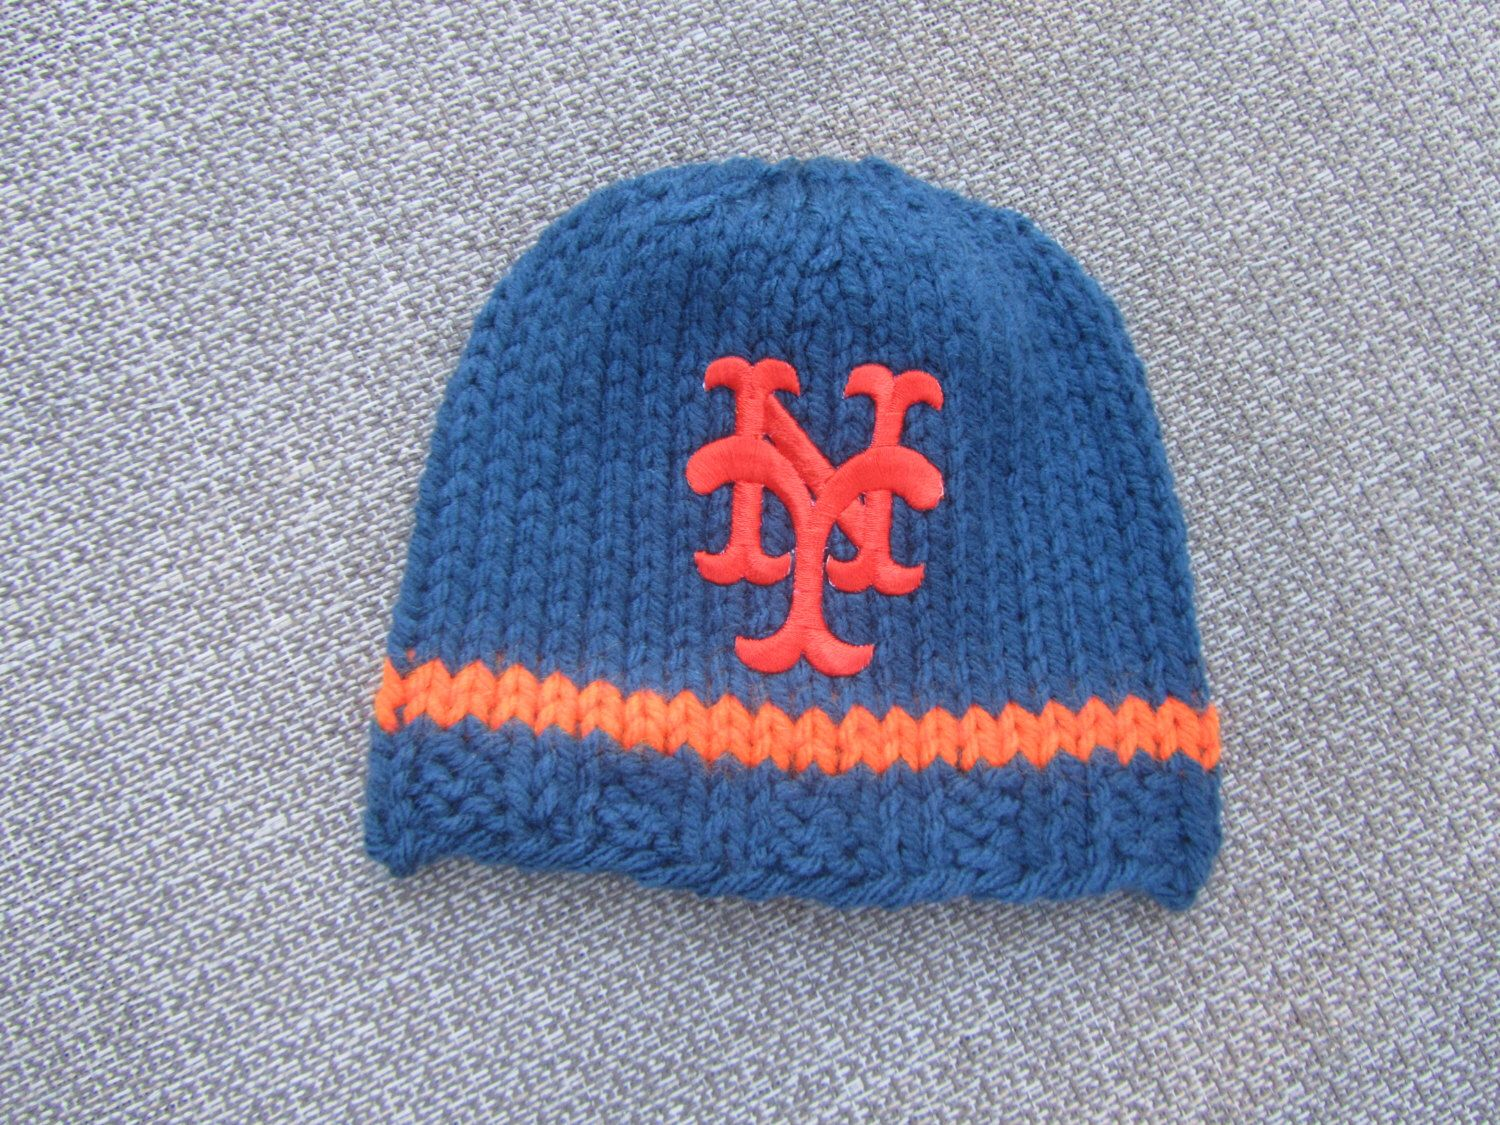 af1fdd9fac0 NEW YORK METS Hand Knit Baby Hat - Mets Baby Hat - Hand Knitted Baby Hat